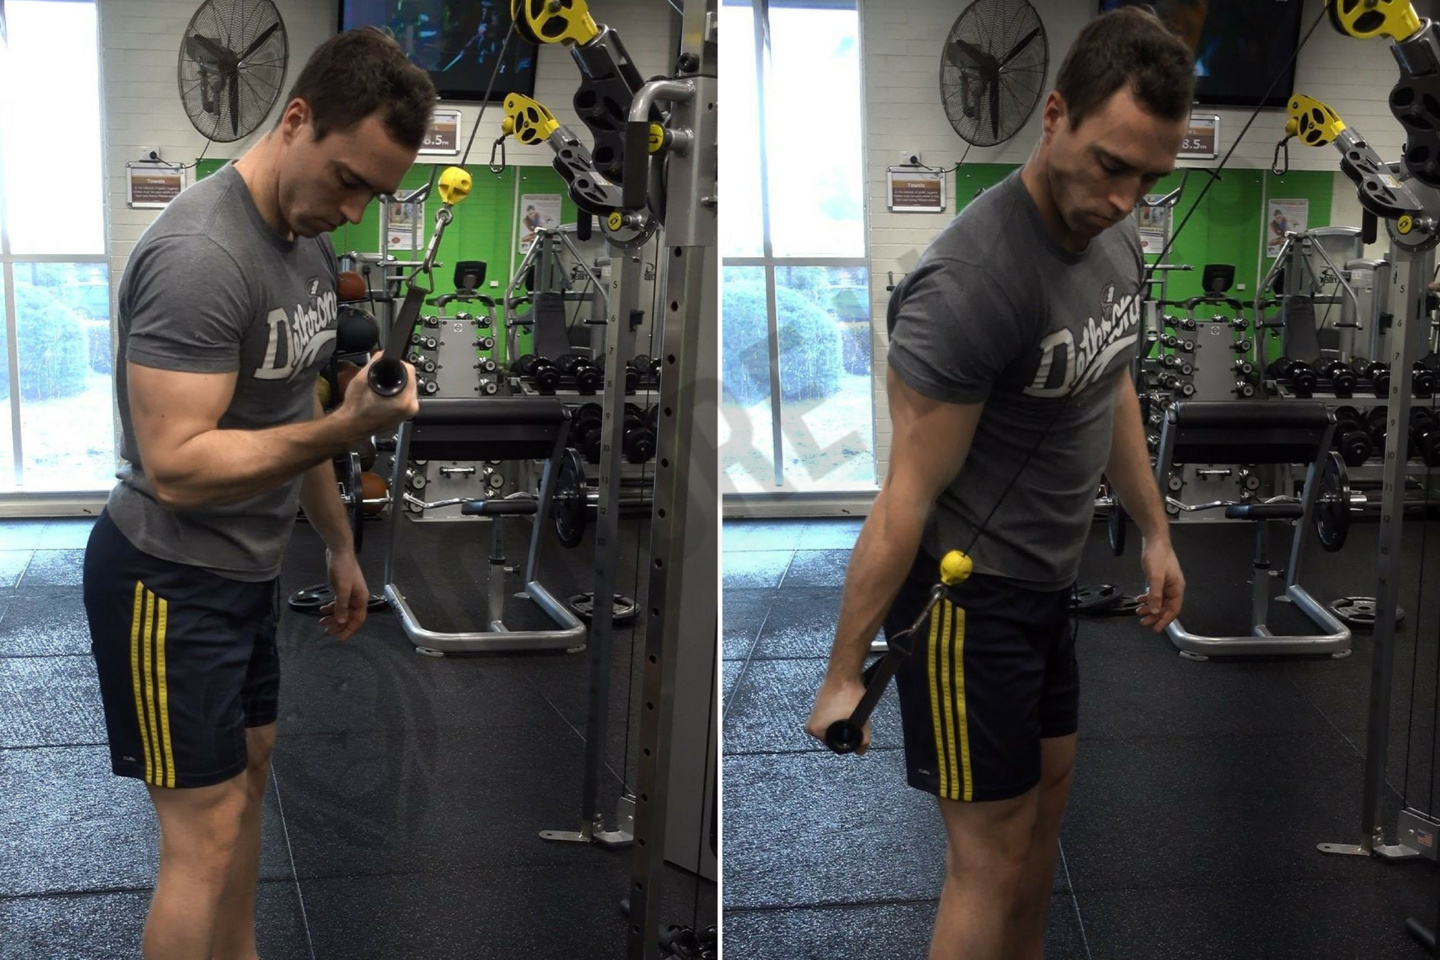 How To: Cable One Arm Tricep Extension - Ignore Limits